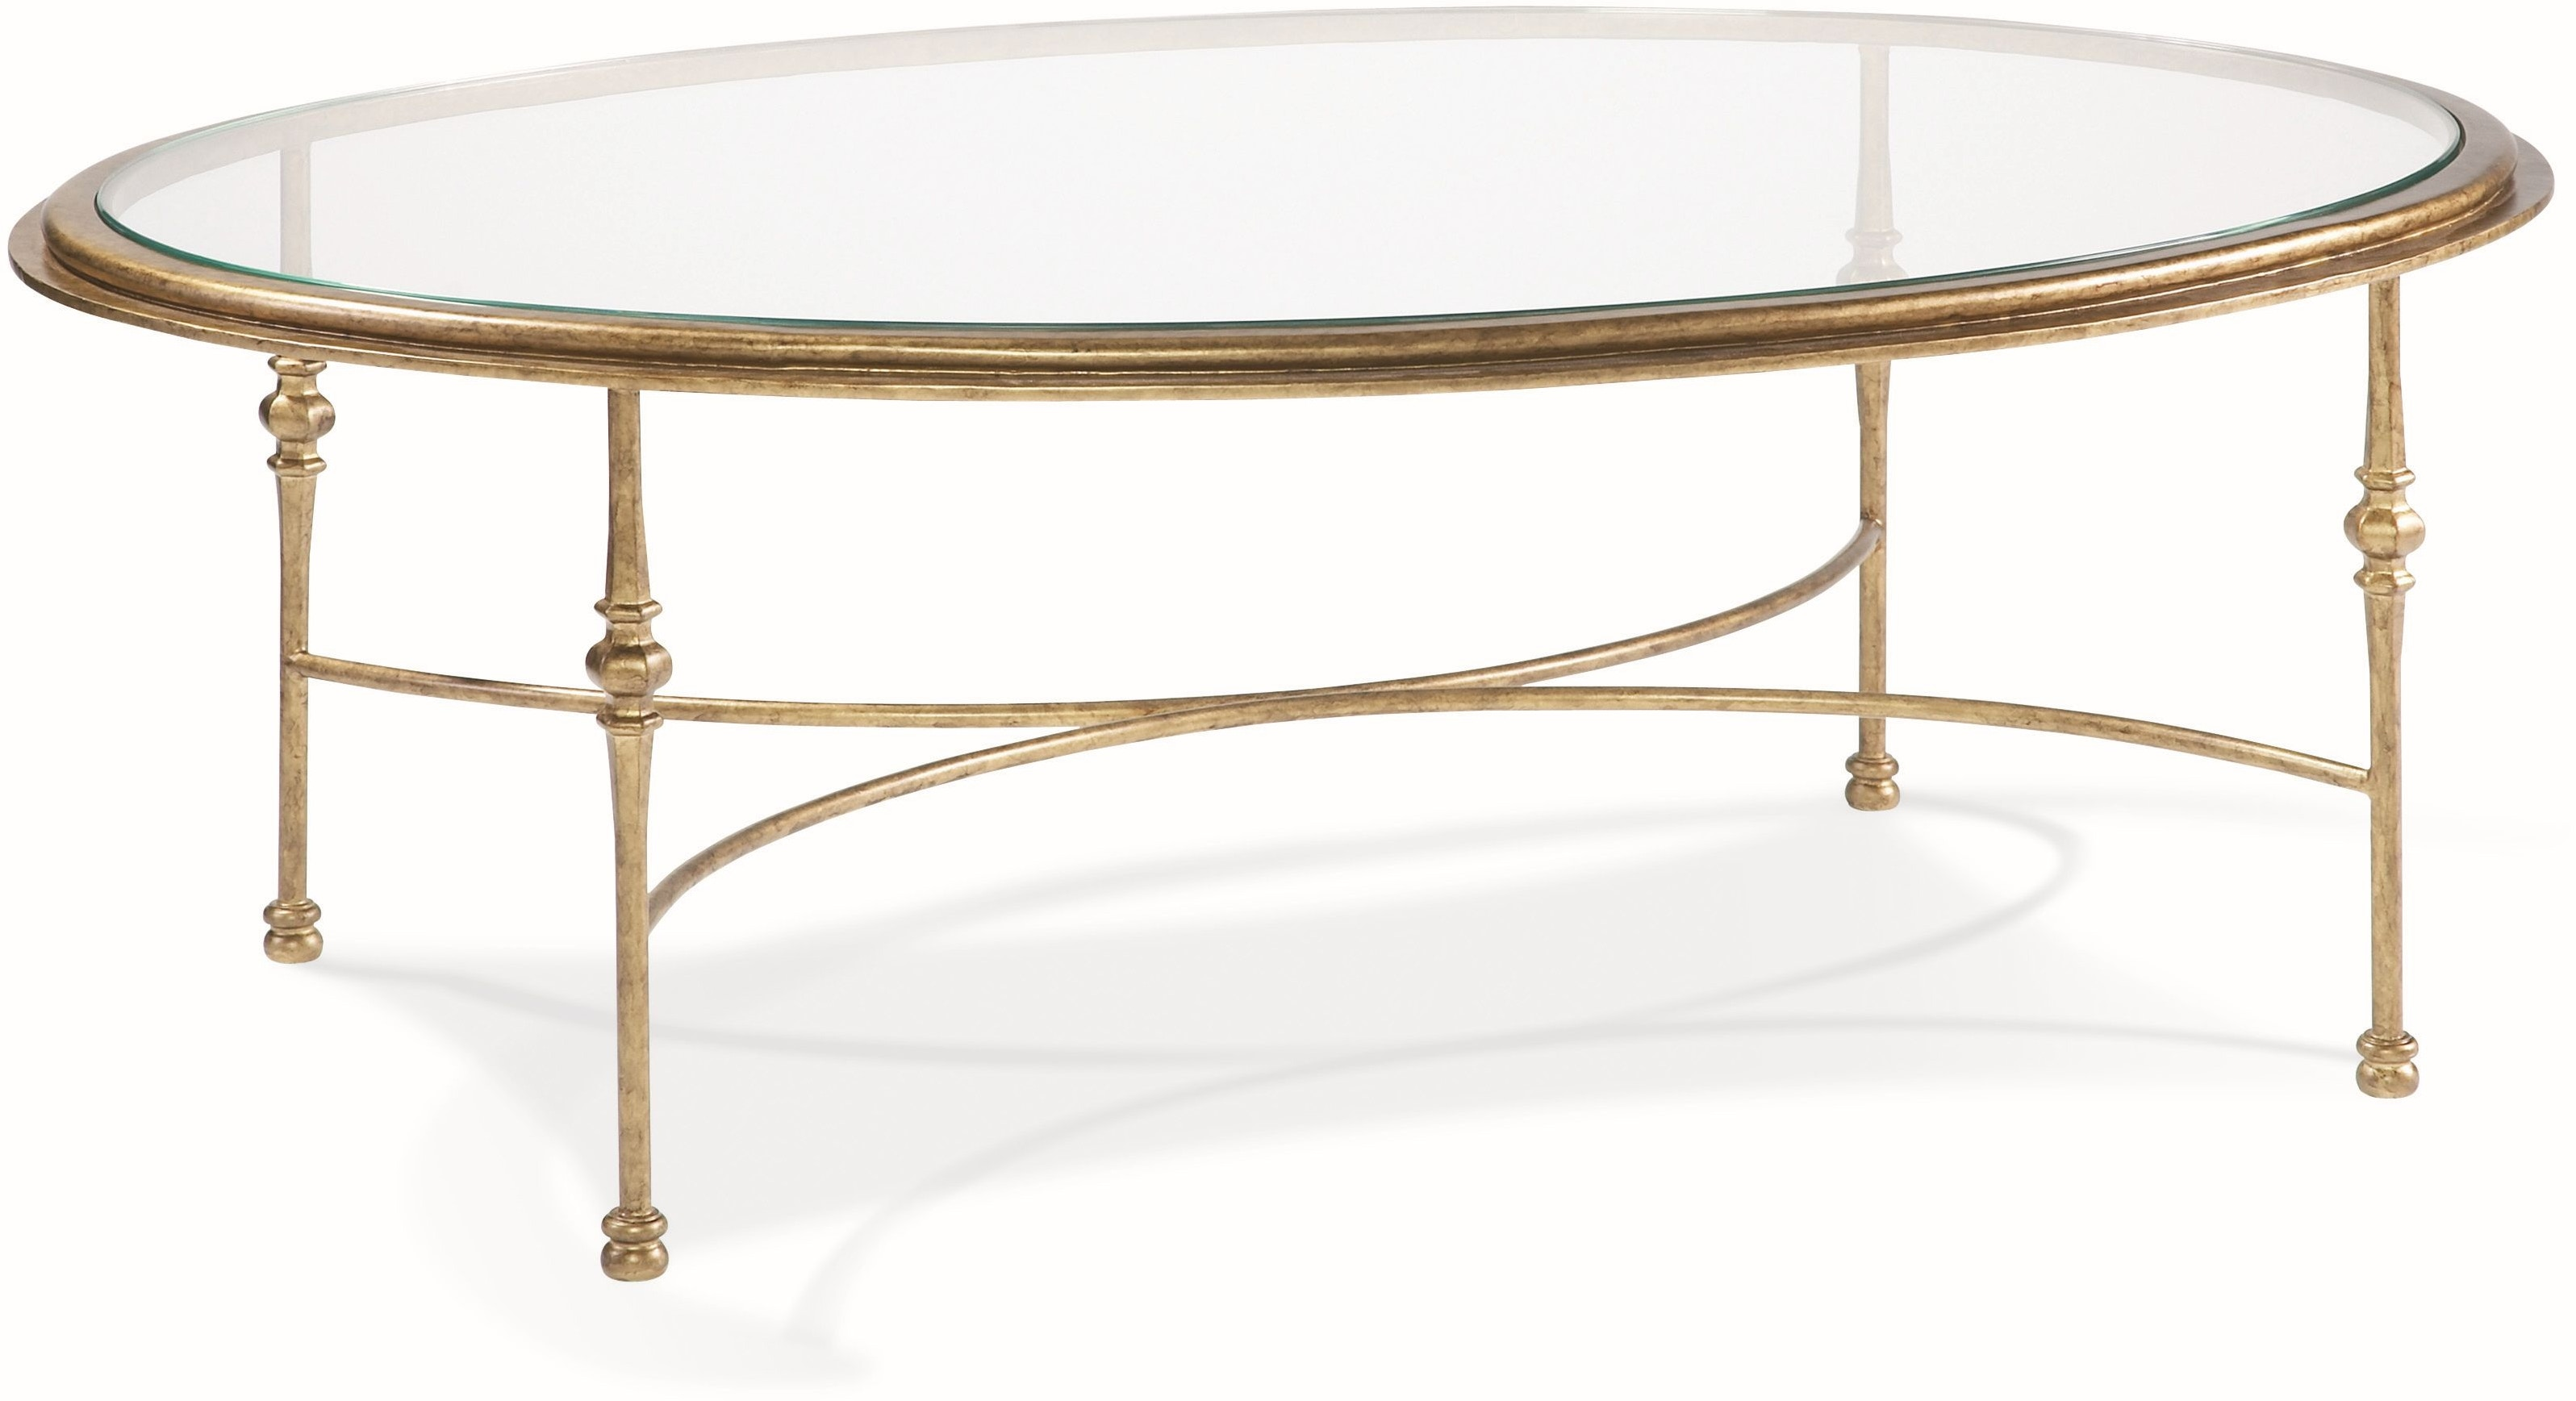 Cth Sherrill Occasional Living Room Oval Cocktail Table